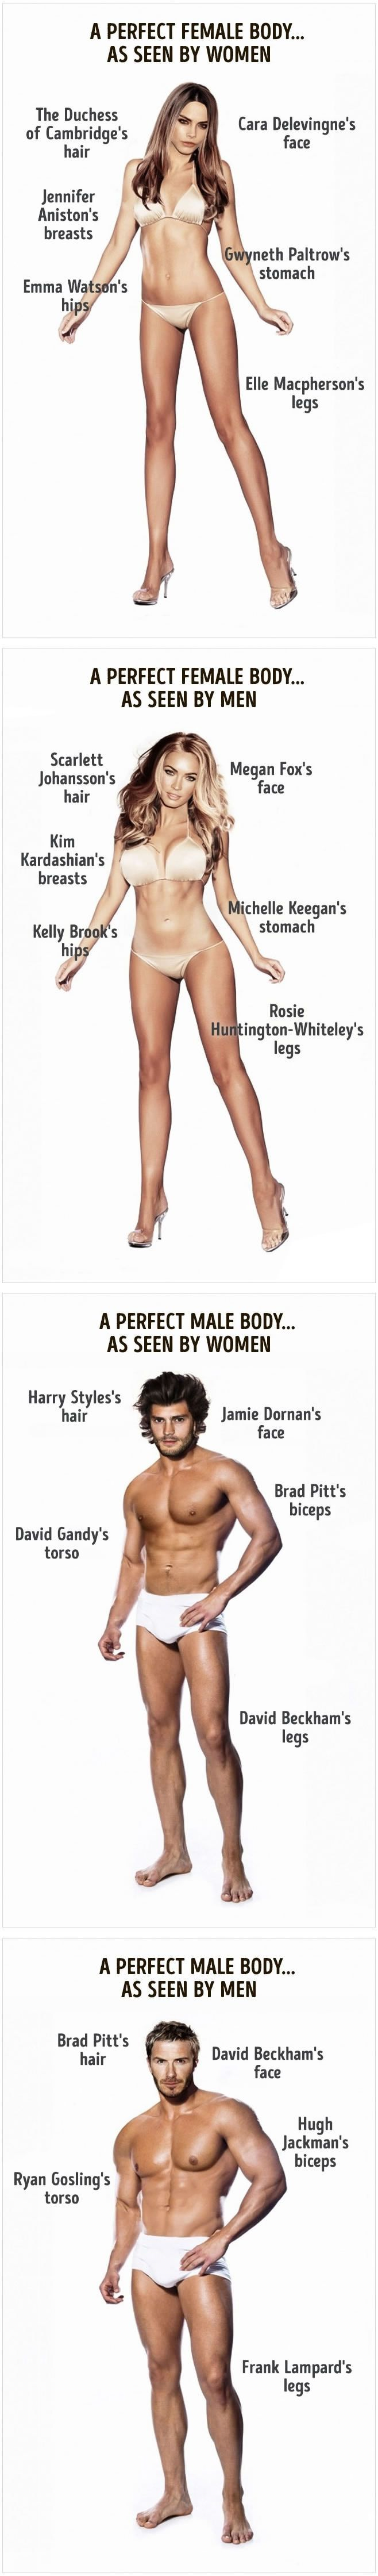 How a perfect body looks as seen by men and women - 9GAG